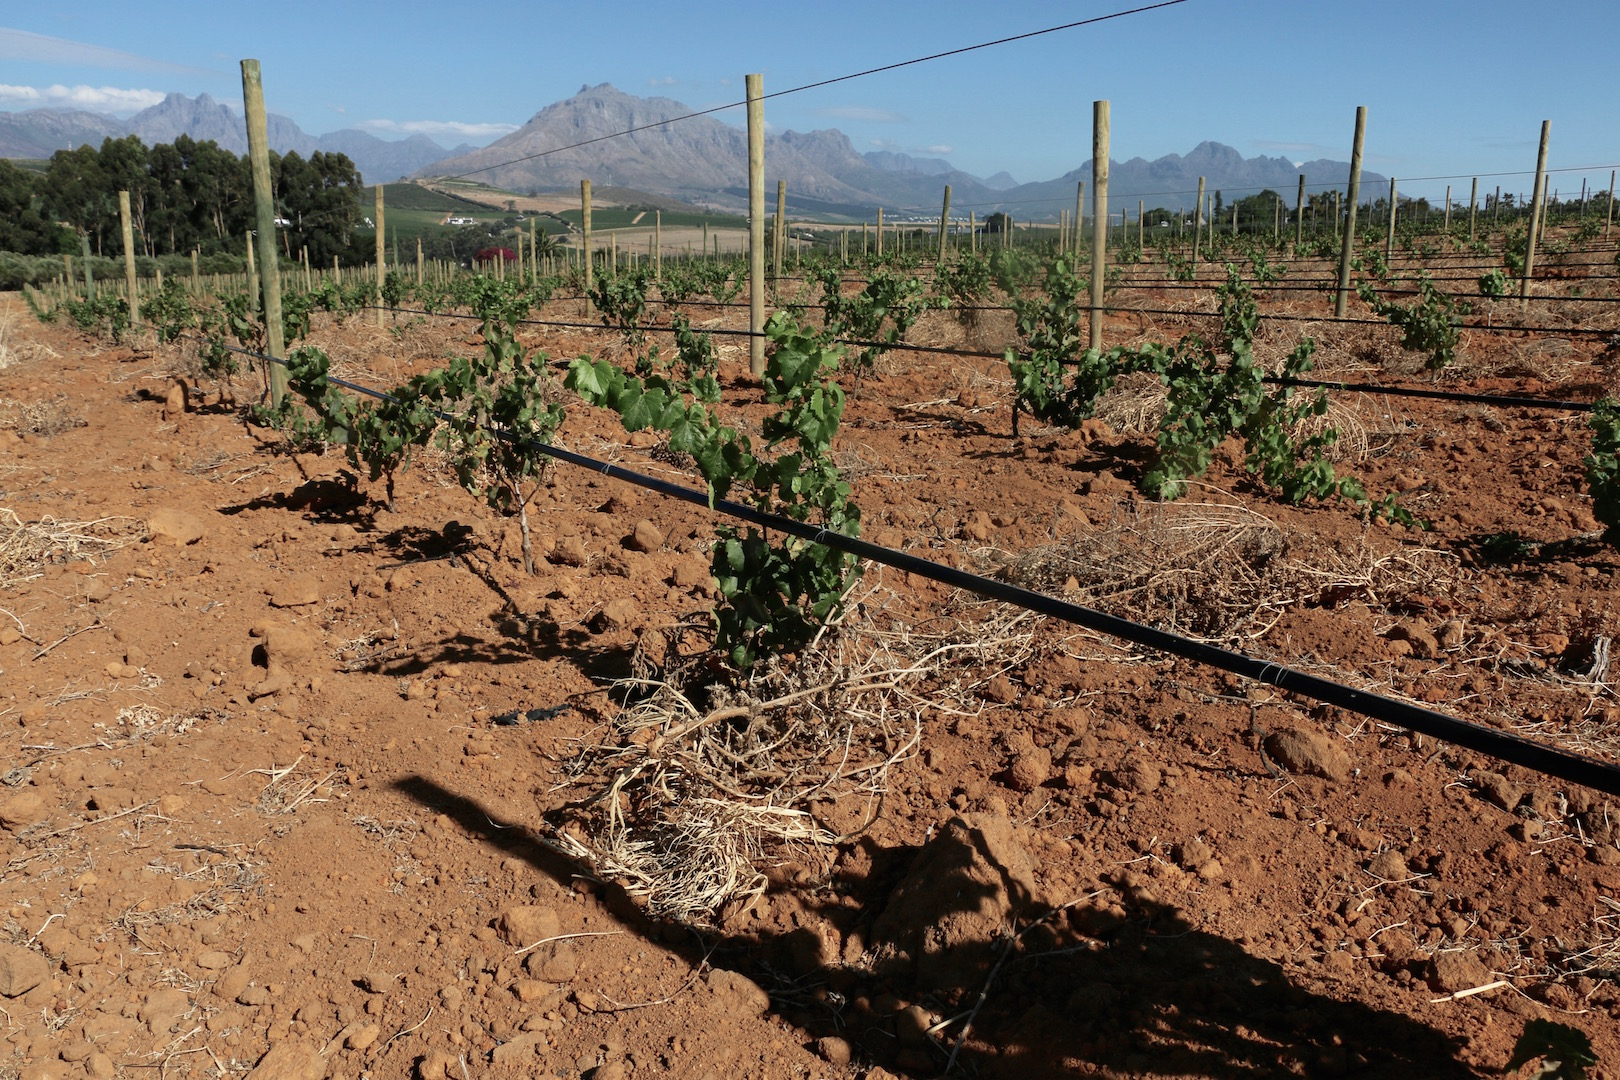 Fields of the Western Cape in South Africa are now brown and dusty, as farmers reduce their irrigation to preserve water.